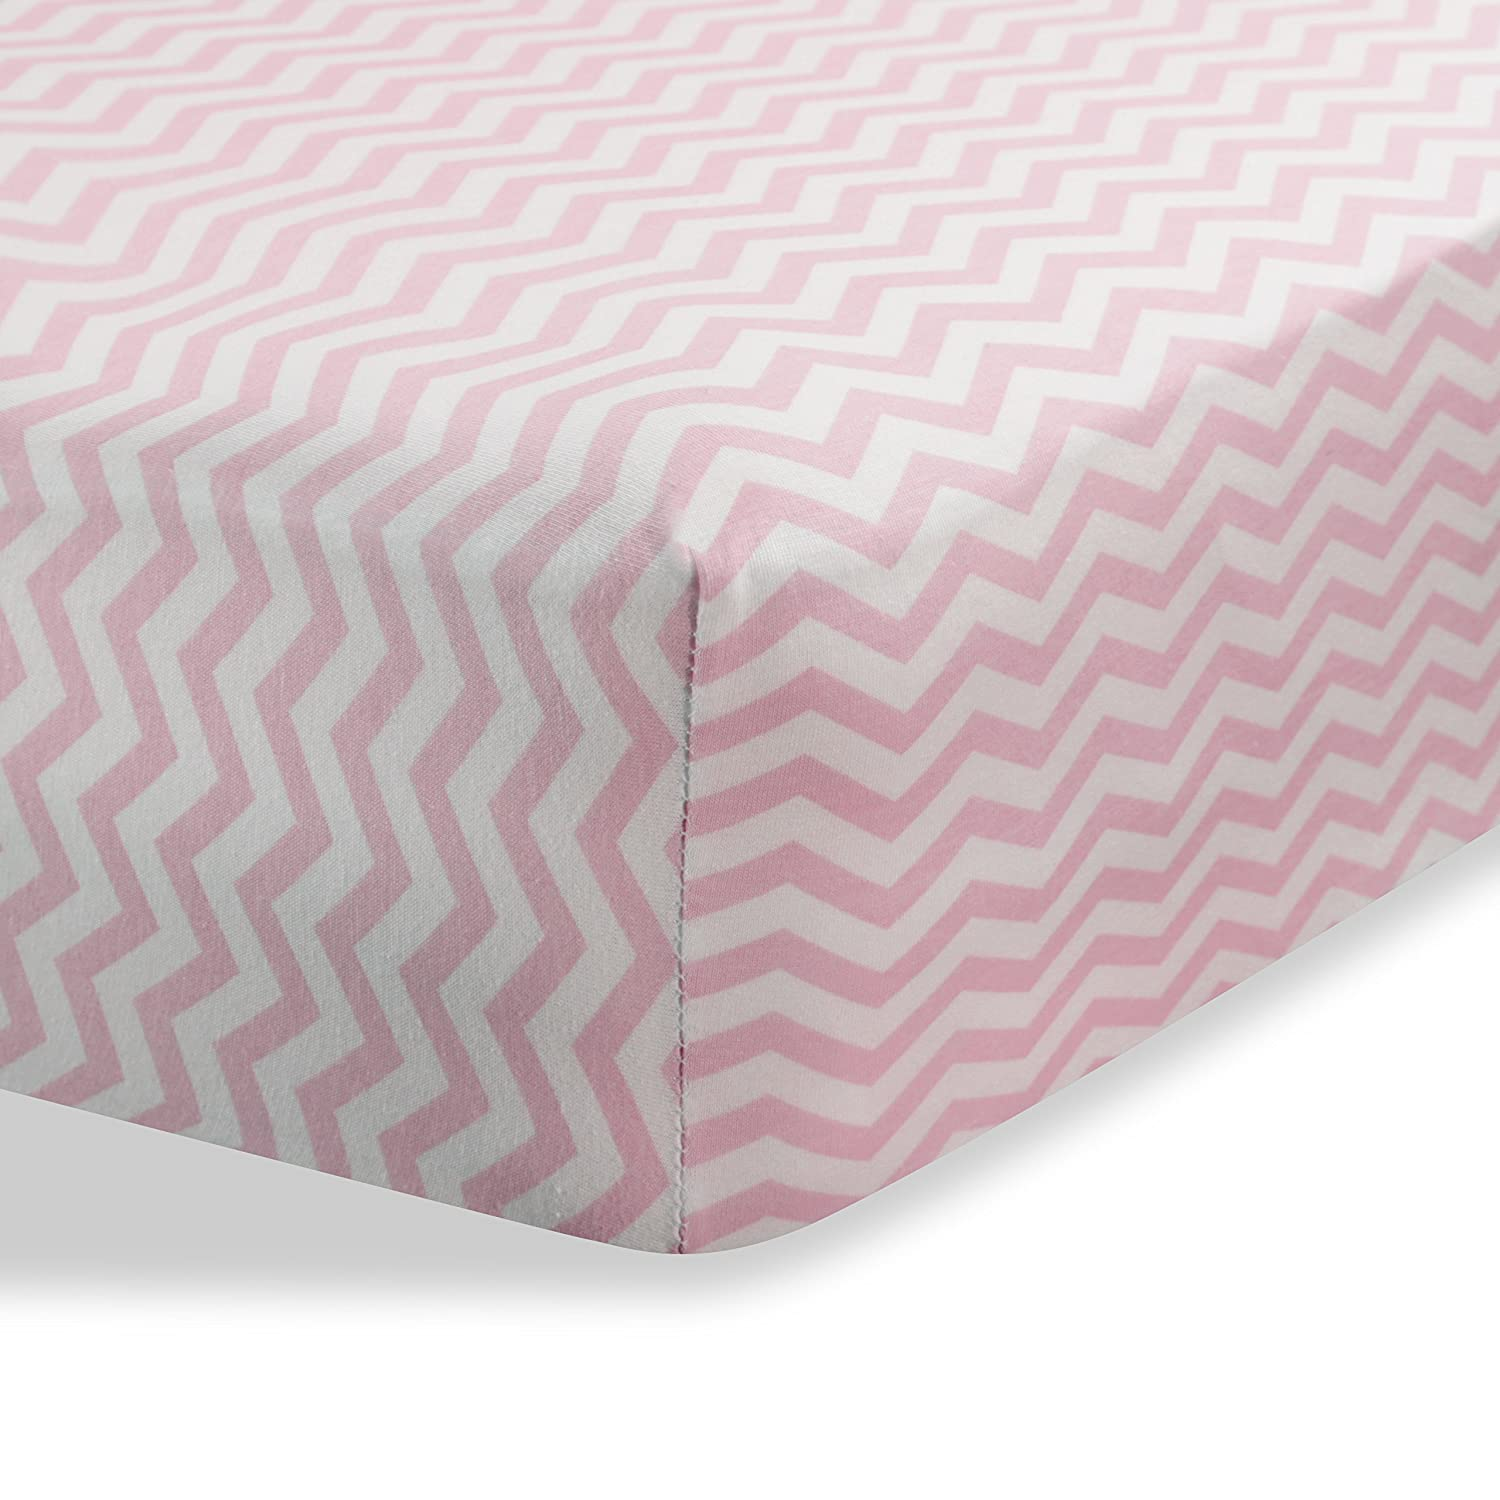 Bassinet Sheets Cradle Sheets Abstract Bassinet Sheets Cradle Sheets for Baby/Infant Deep Fitted Soft Jersey Knit by Abstract 16